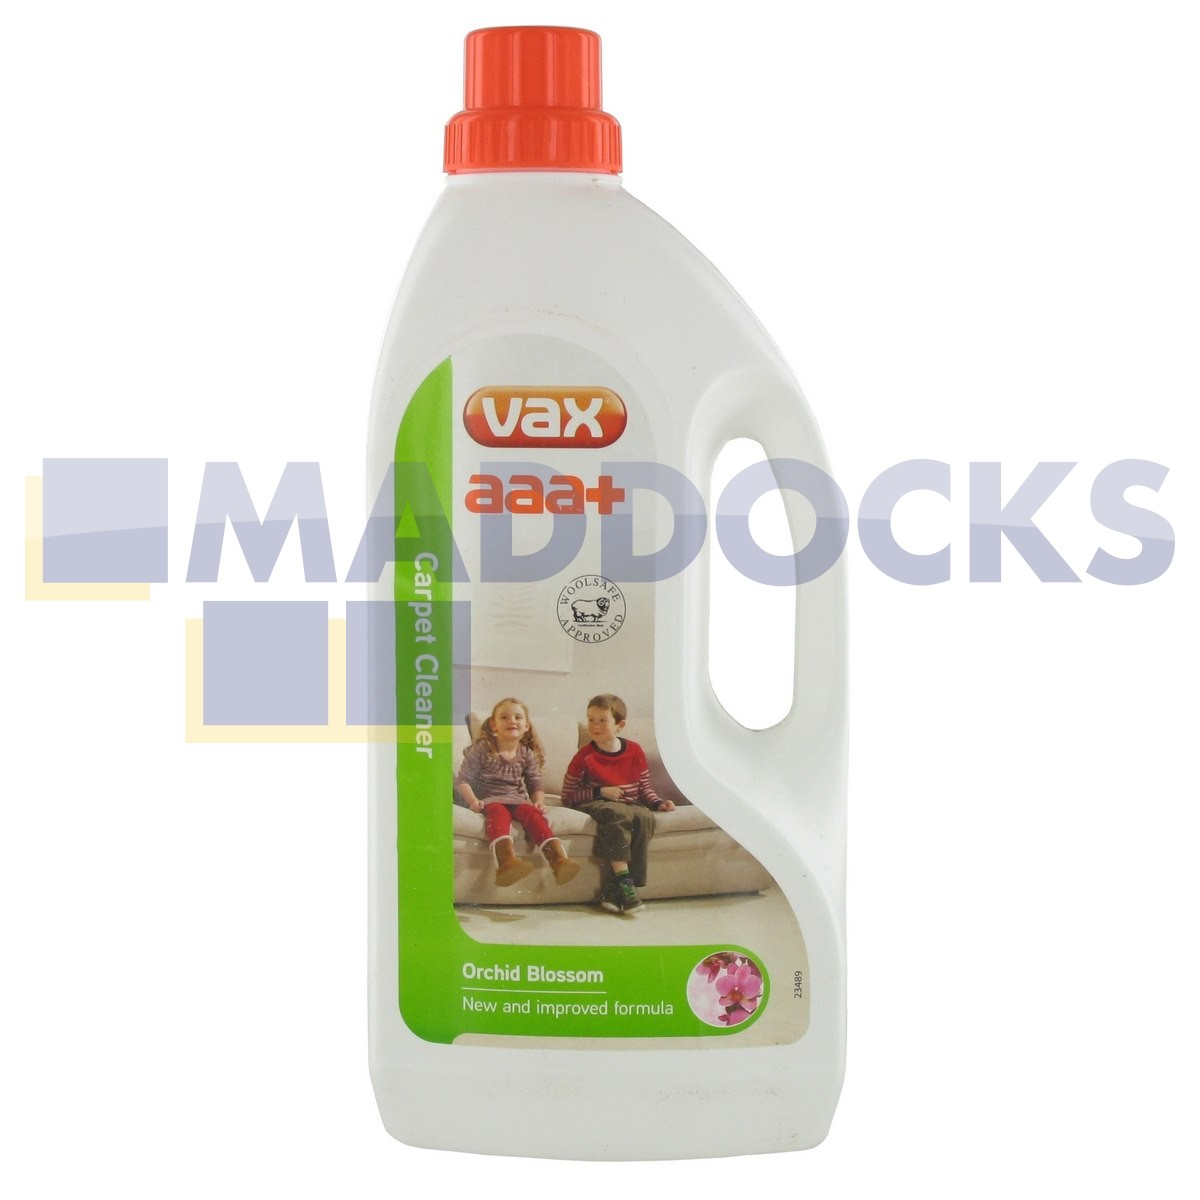 Genuine Original Vax AAA+ Woolsafe Approved Standard 'Orchid Blossom' Carpet & Upholstery Cleaner Solution (1.5 Litre) : 55-VX-08